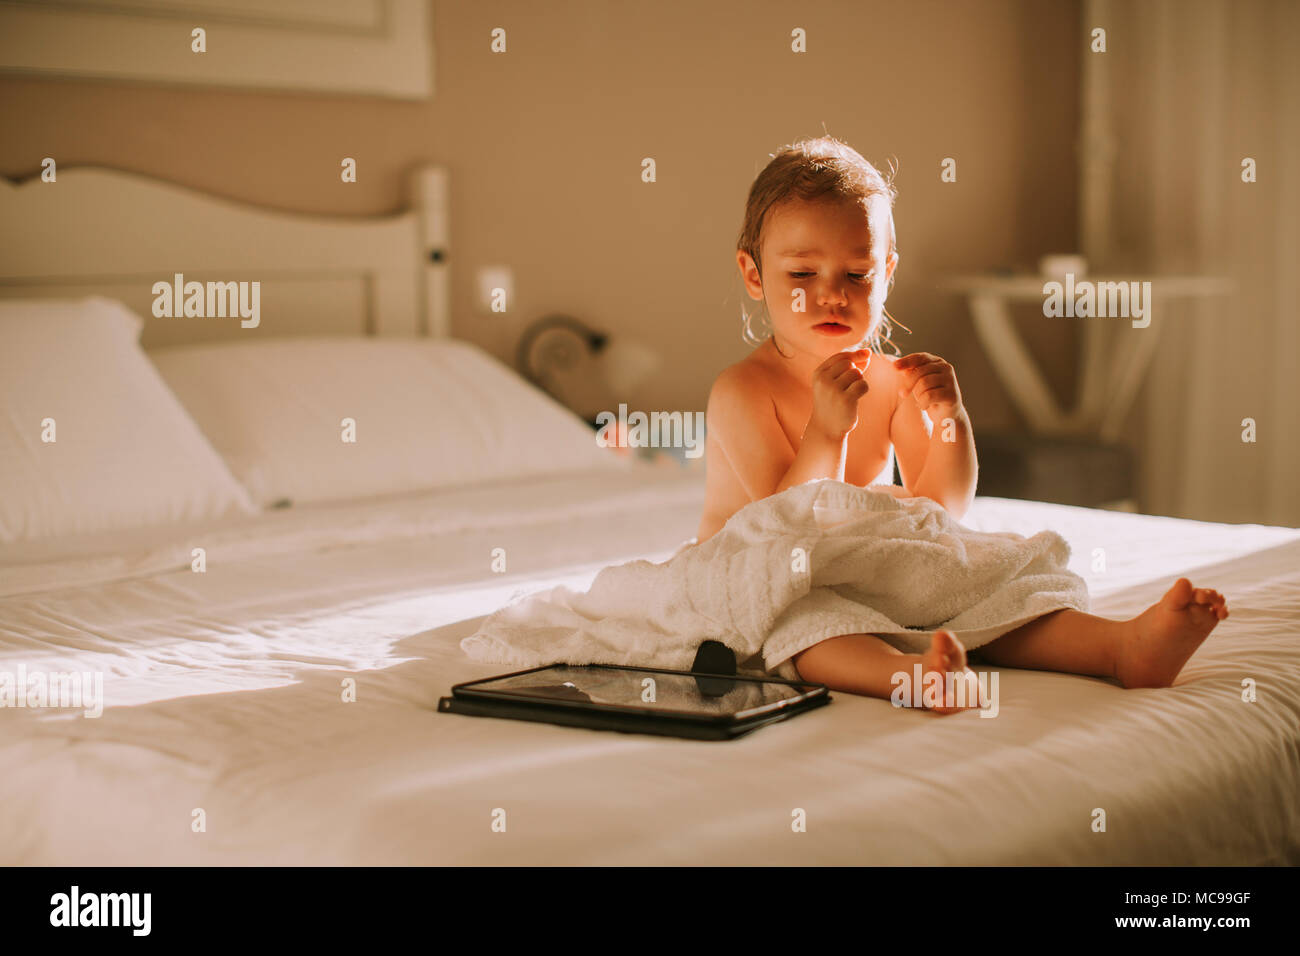 Hair Wash Bed Stock Photos & Hair Wash Bed Stock Images - Alamy